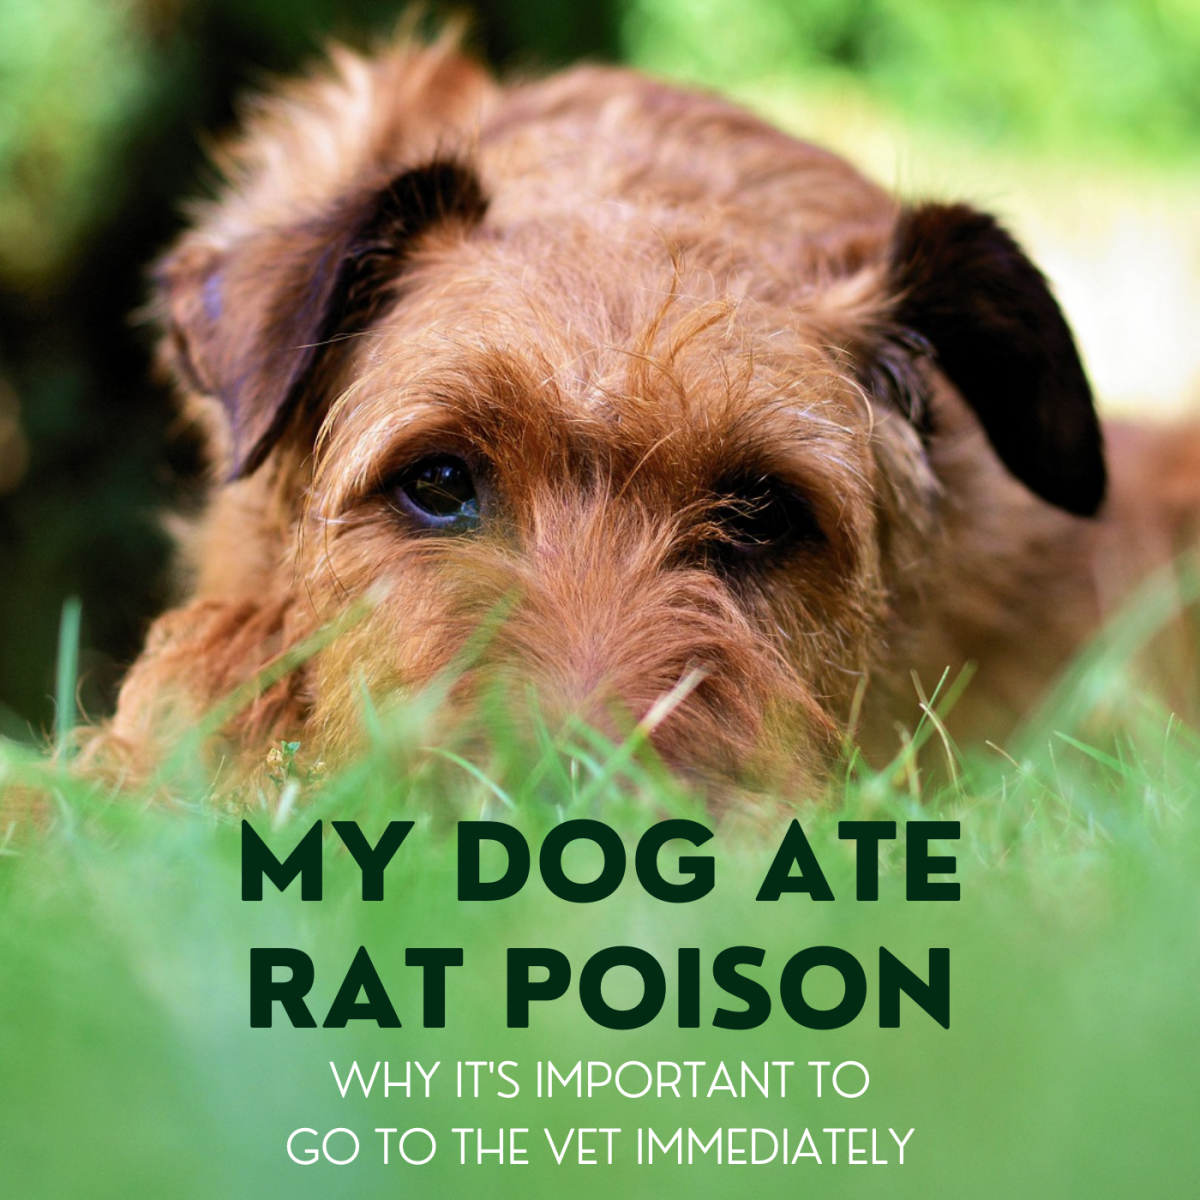 If your dog ingested rat poison, go to the vet as soon as possible. This article offers information on the types of rat poison, the symptoms of poisoning, and how your vet might treat it.